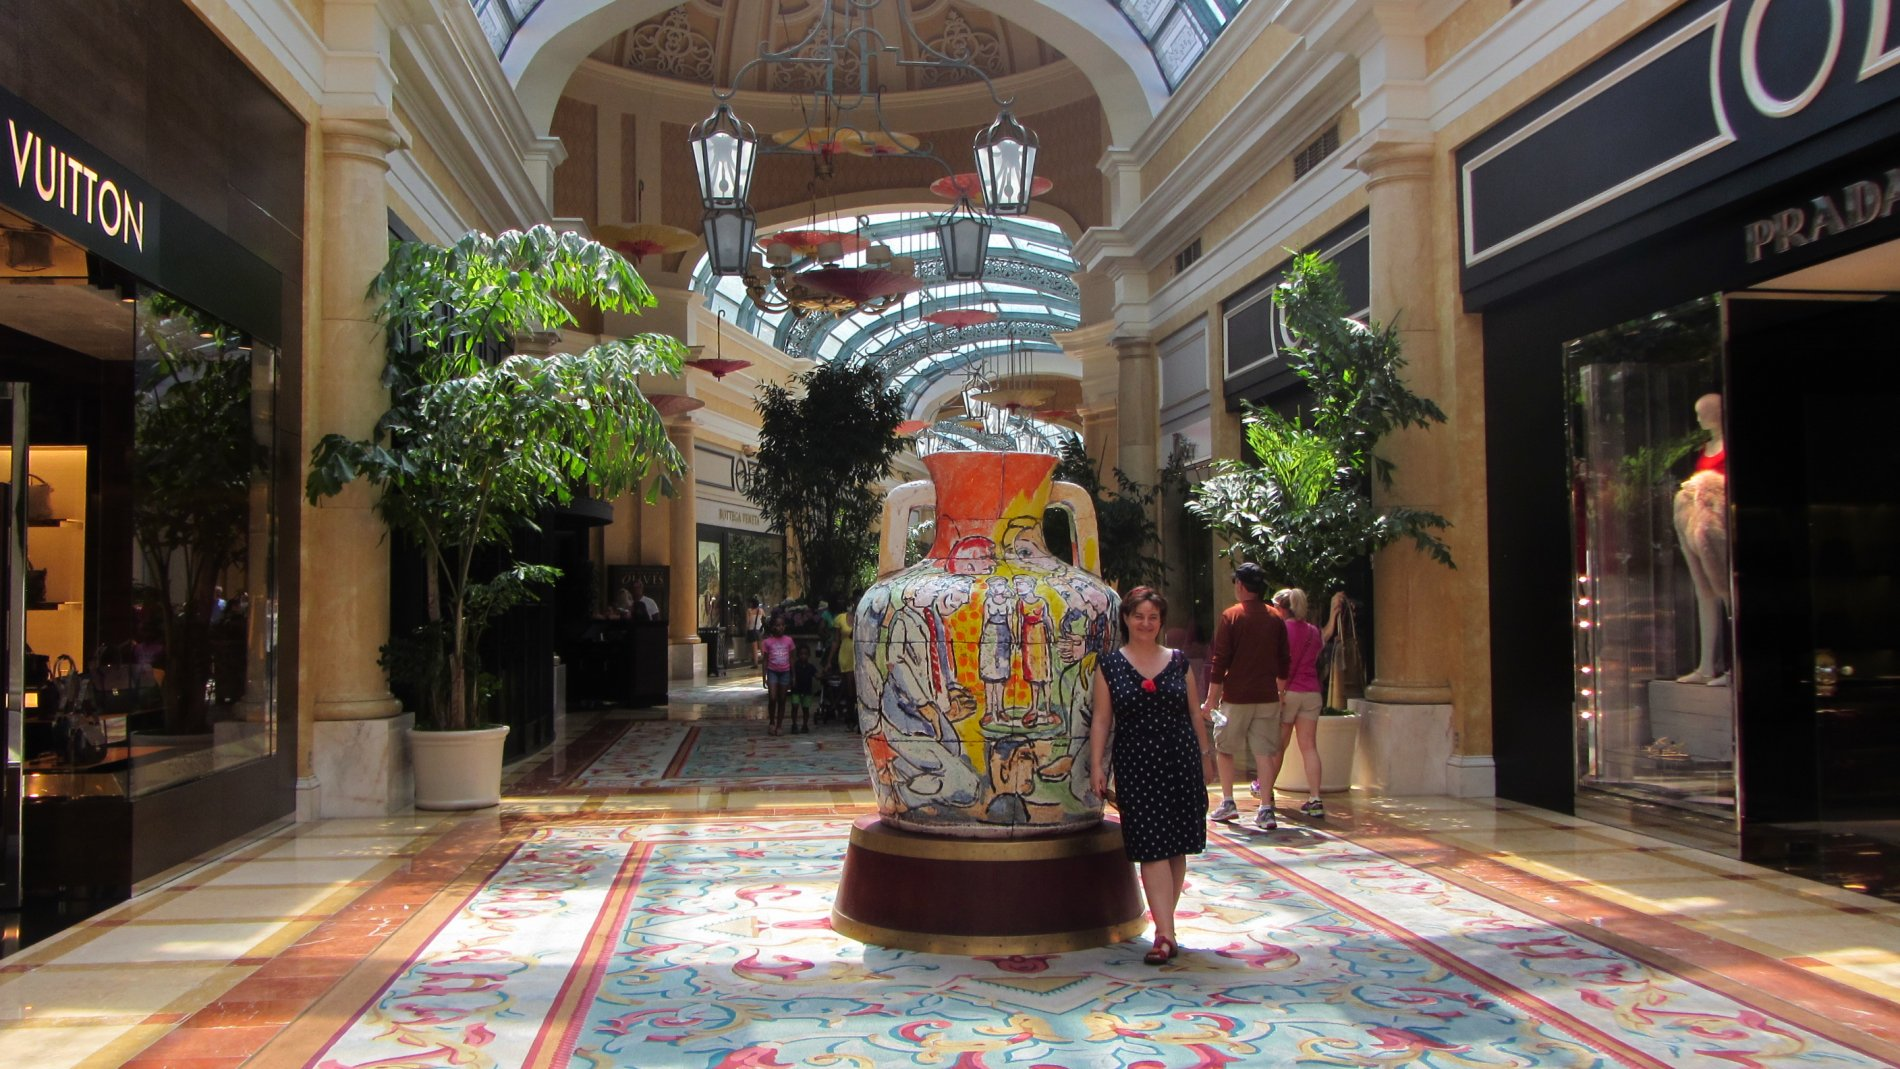 Las Vegas_21.JPG-commment